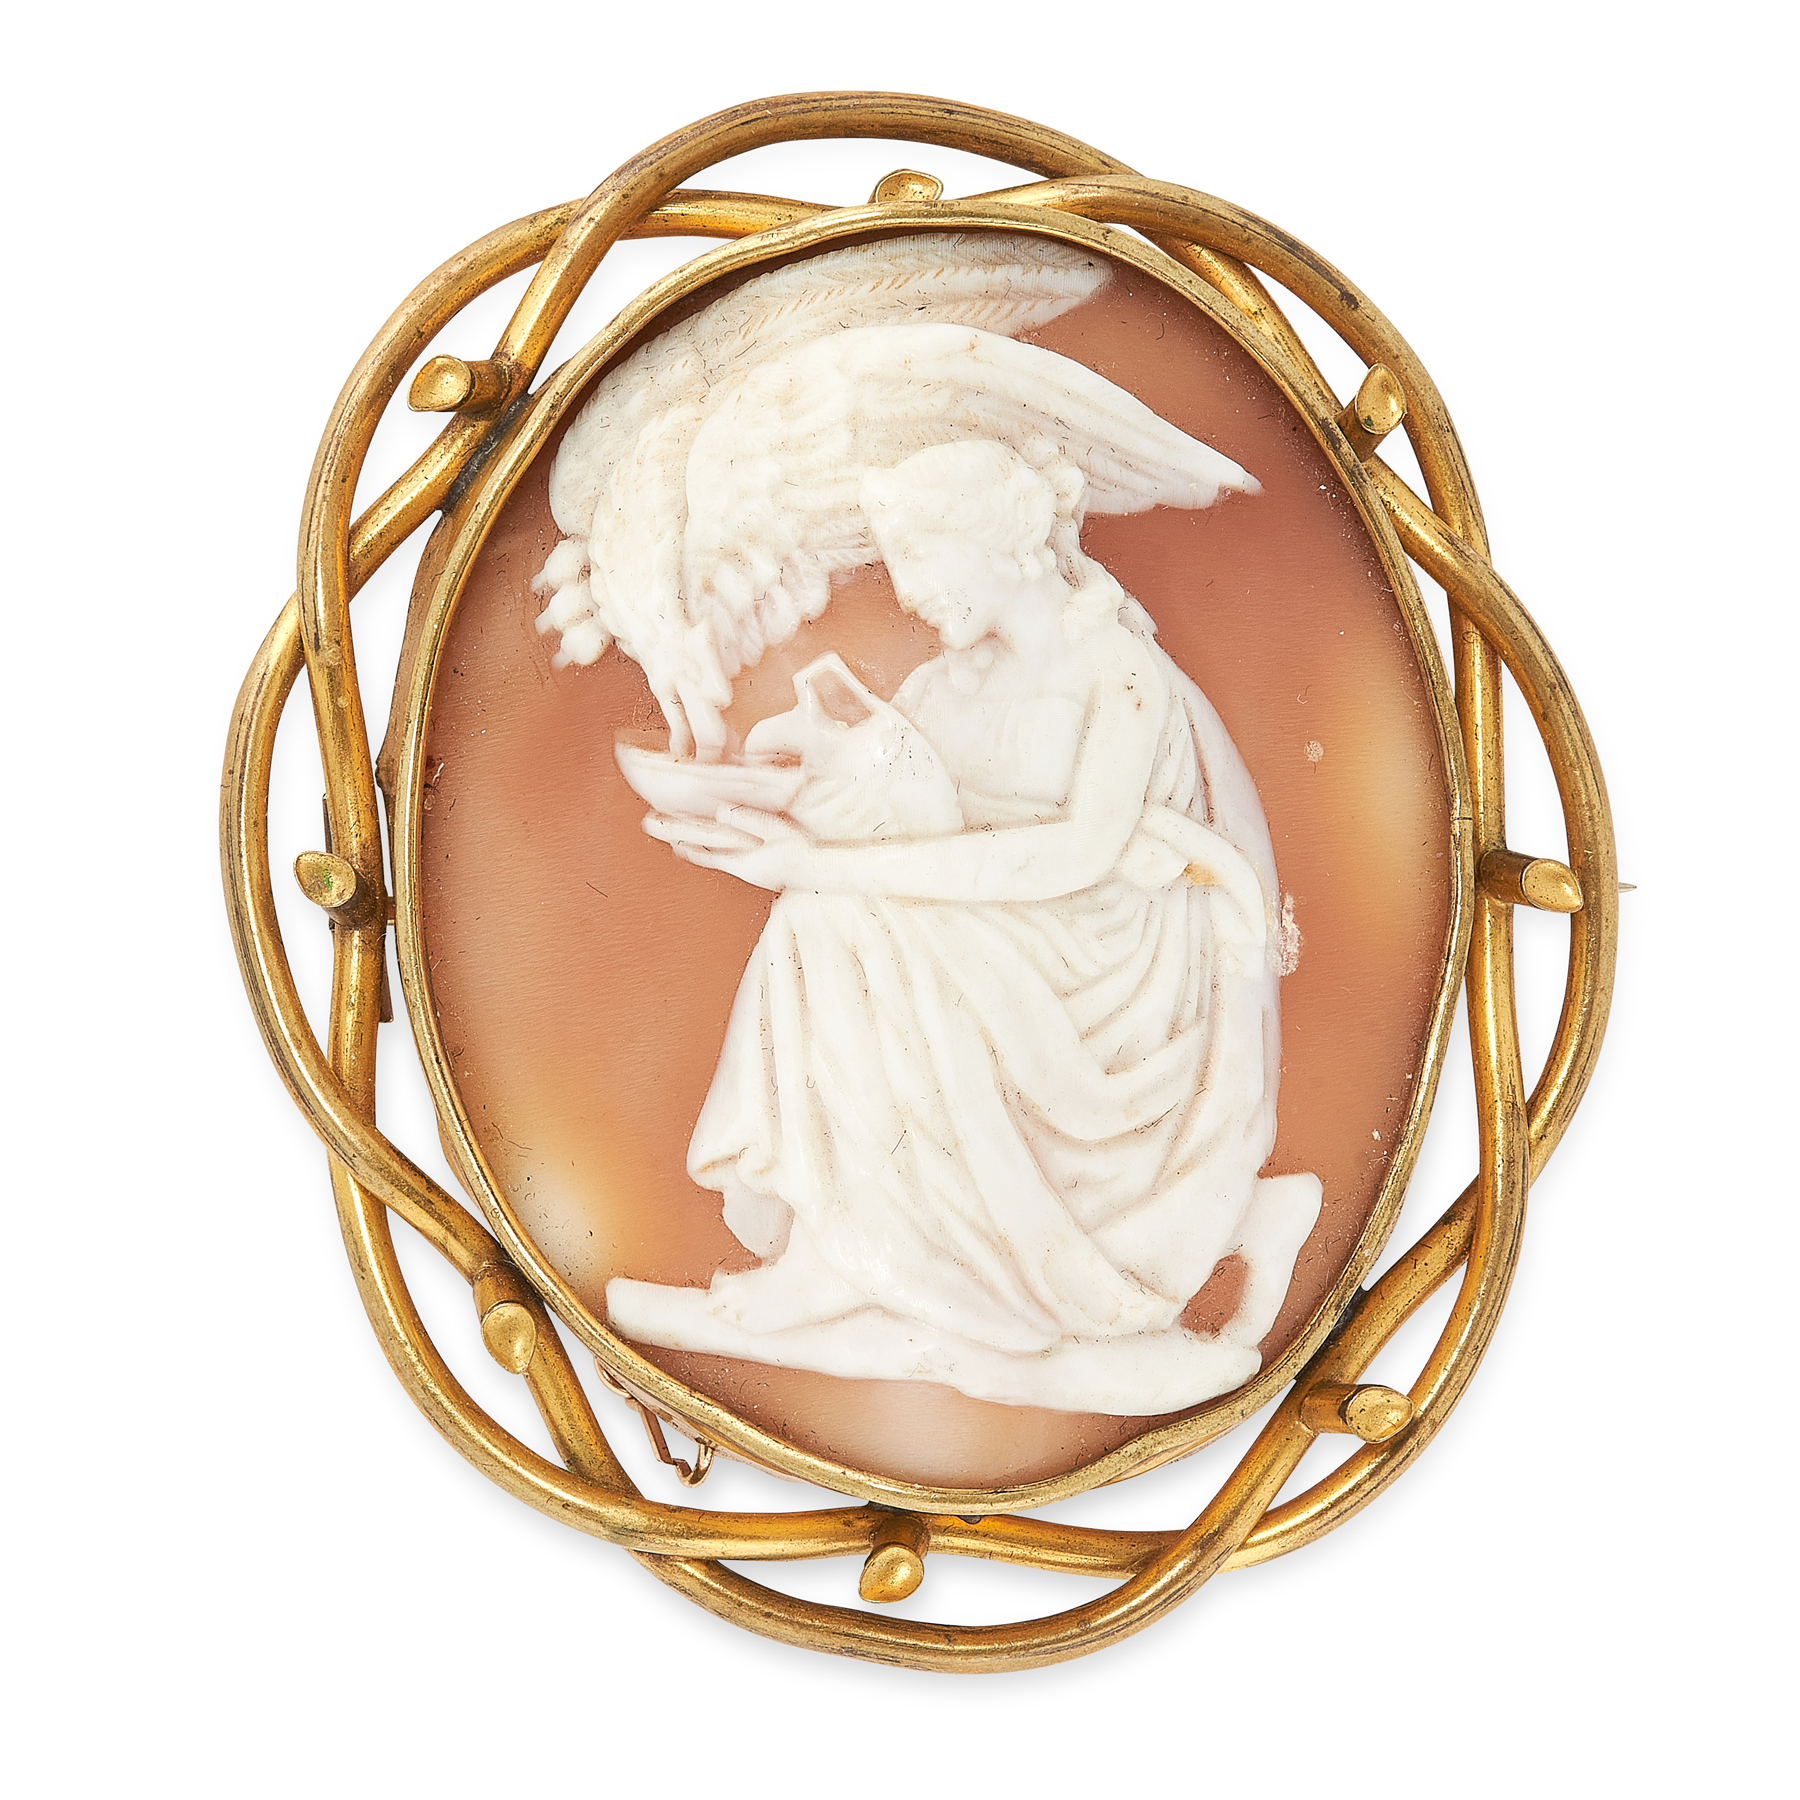 AN ANTIQUE VICTORIAN CAMEO BROOCH, 19TH CENTURY in pinchbeck, of oval form, carved to depict a scene